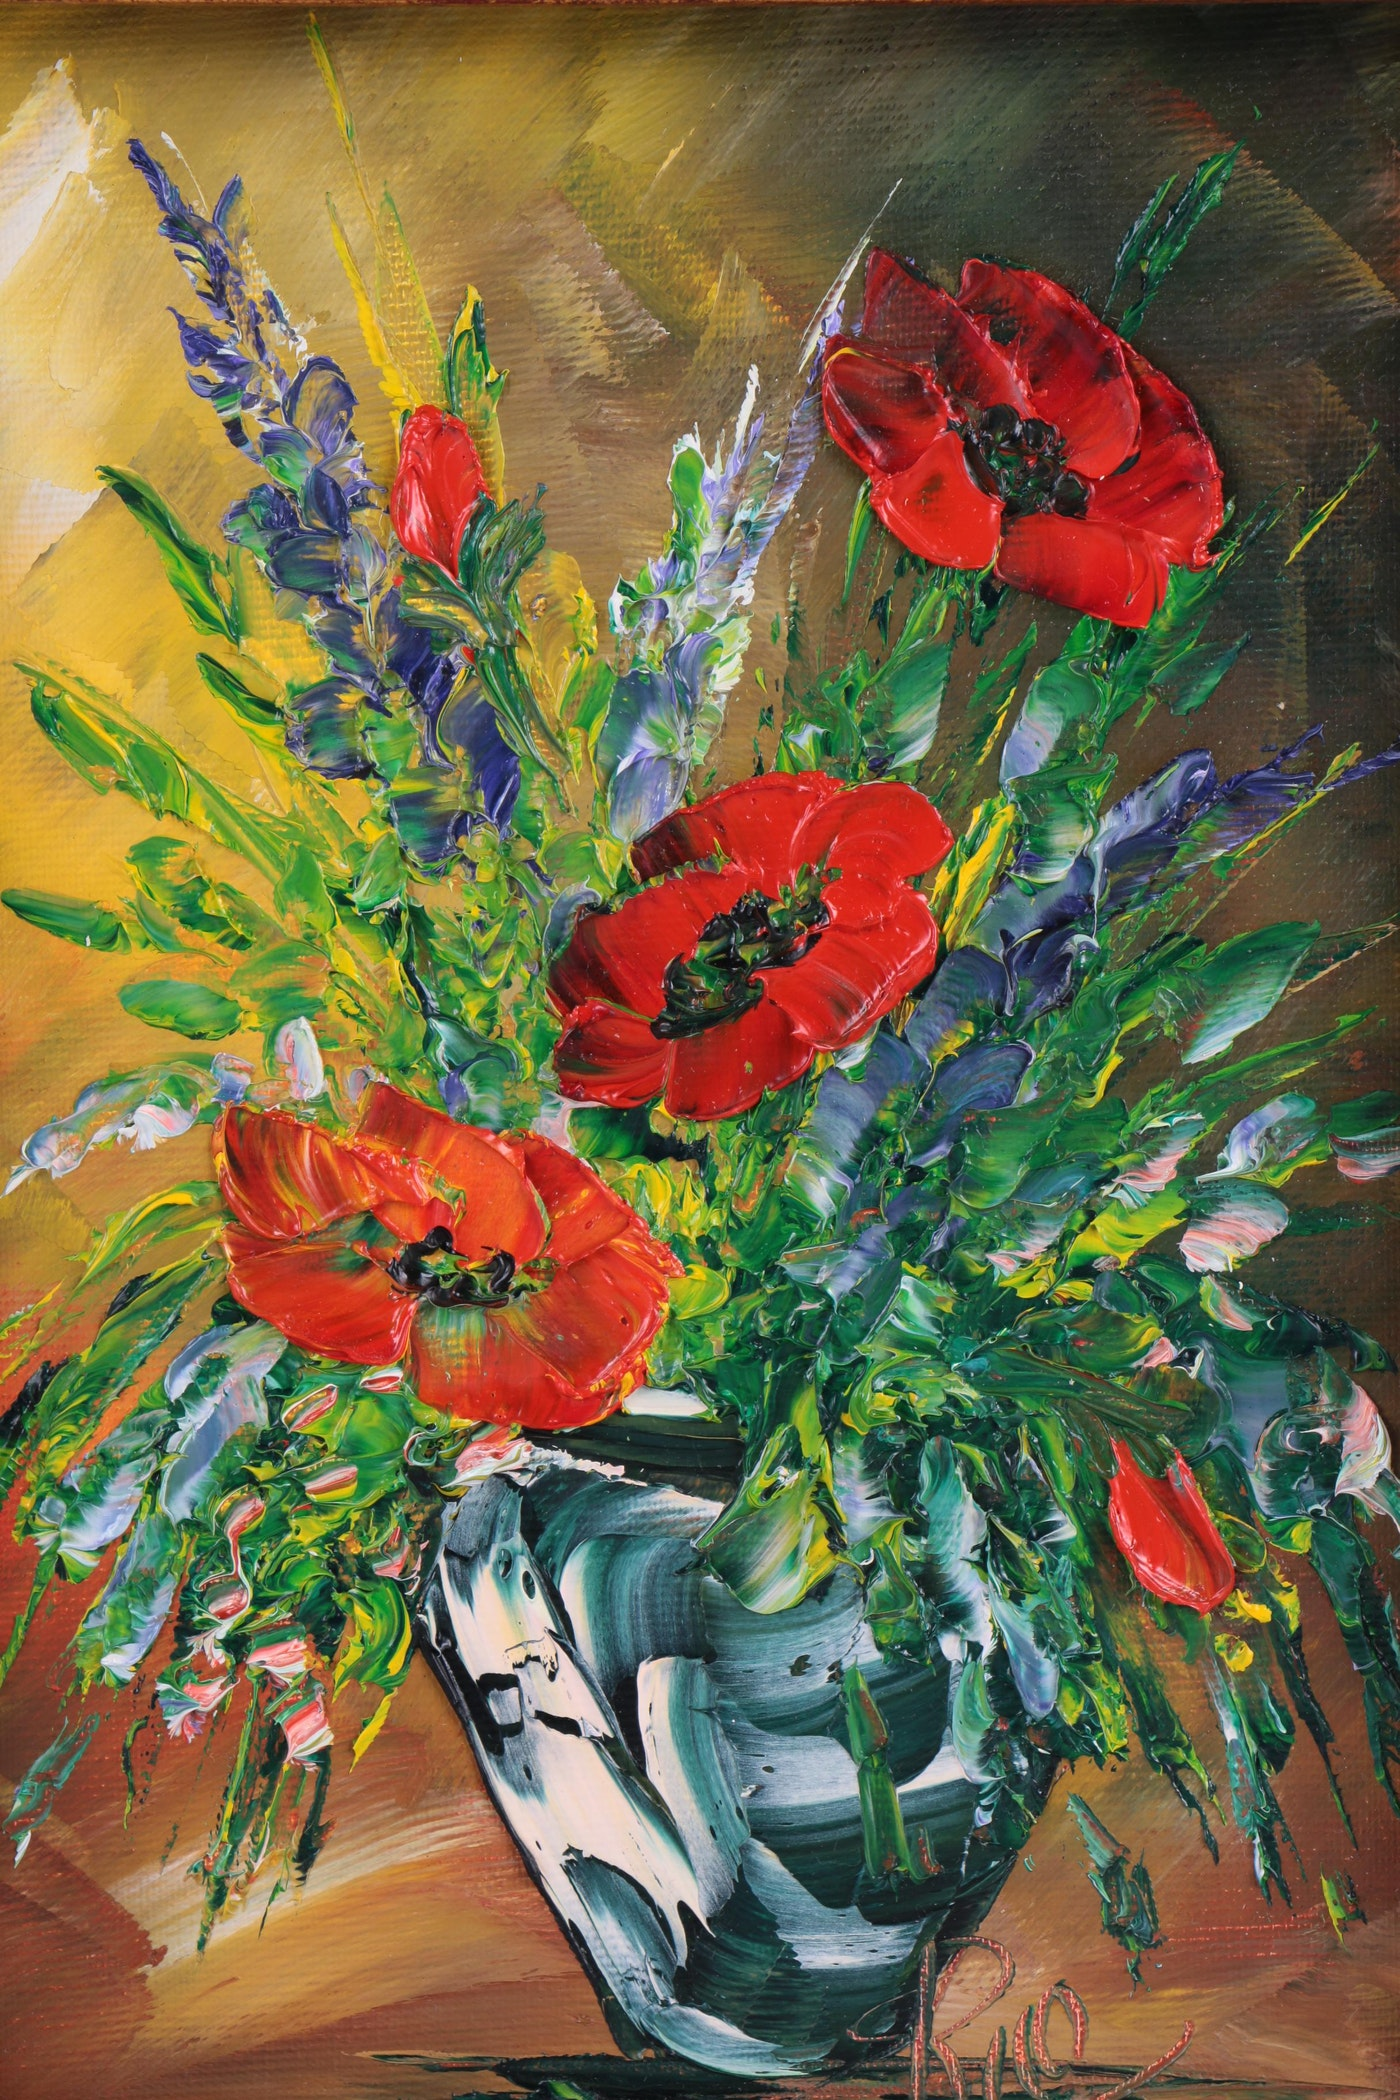 Oil Painting on Canvas of Flowers in Vase | EBTH